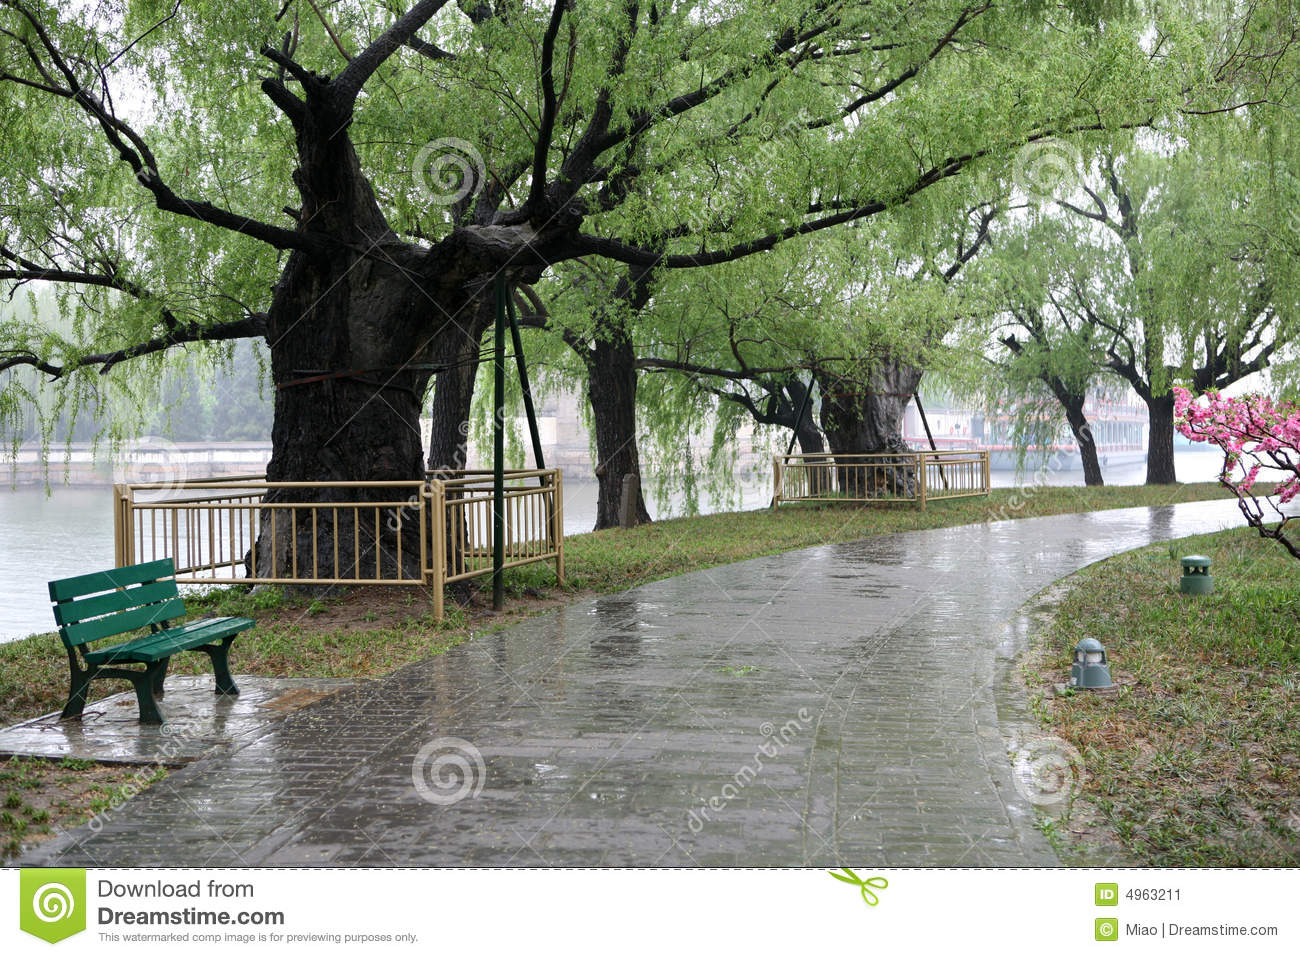 Avenue After Spring Rain Stock Image - Image: 4963211